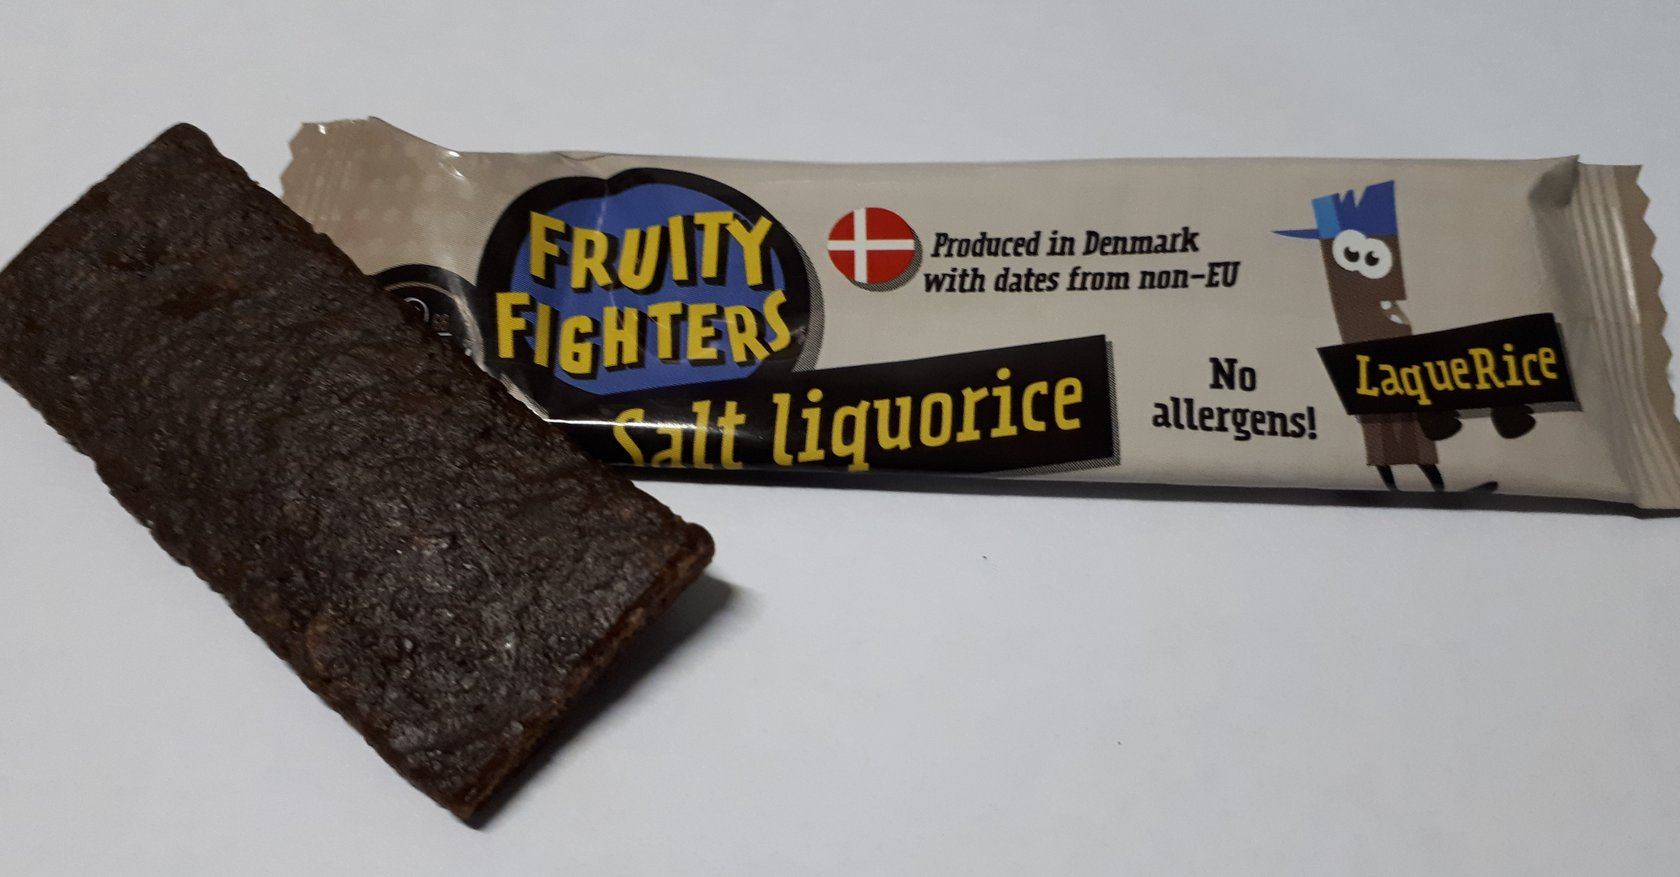 FRUITY FIGHTERS Salt Liquorice